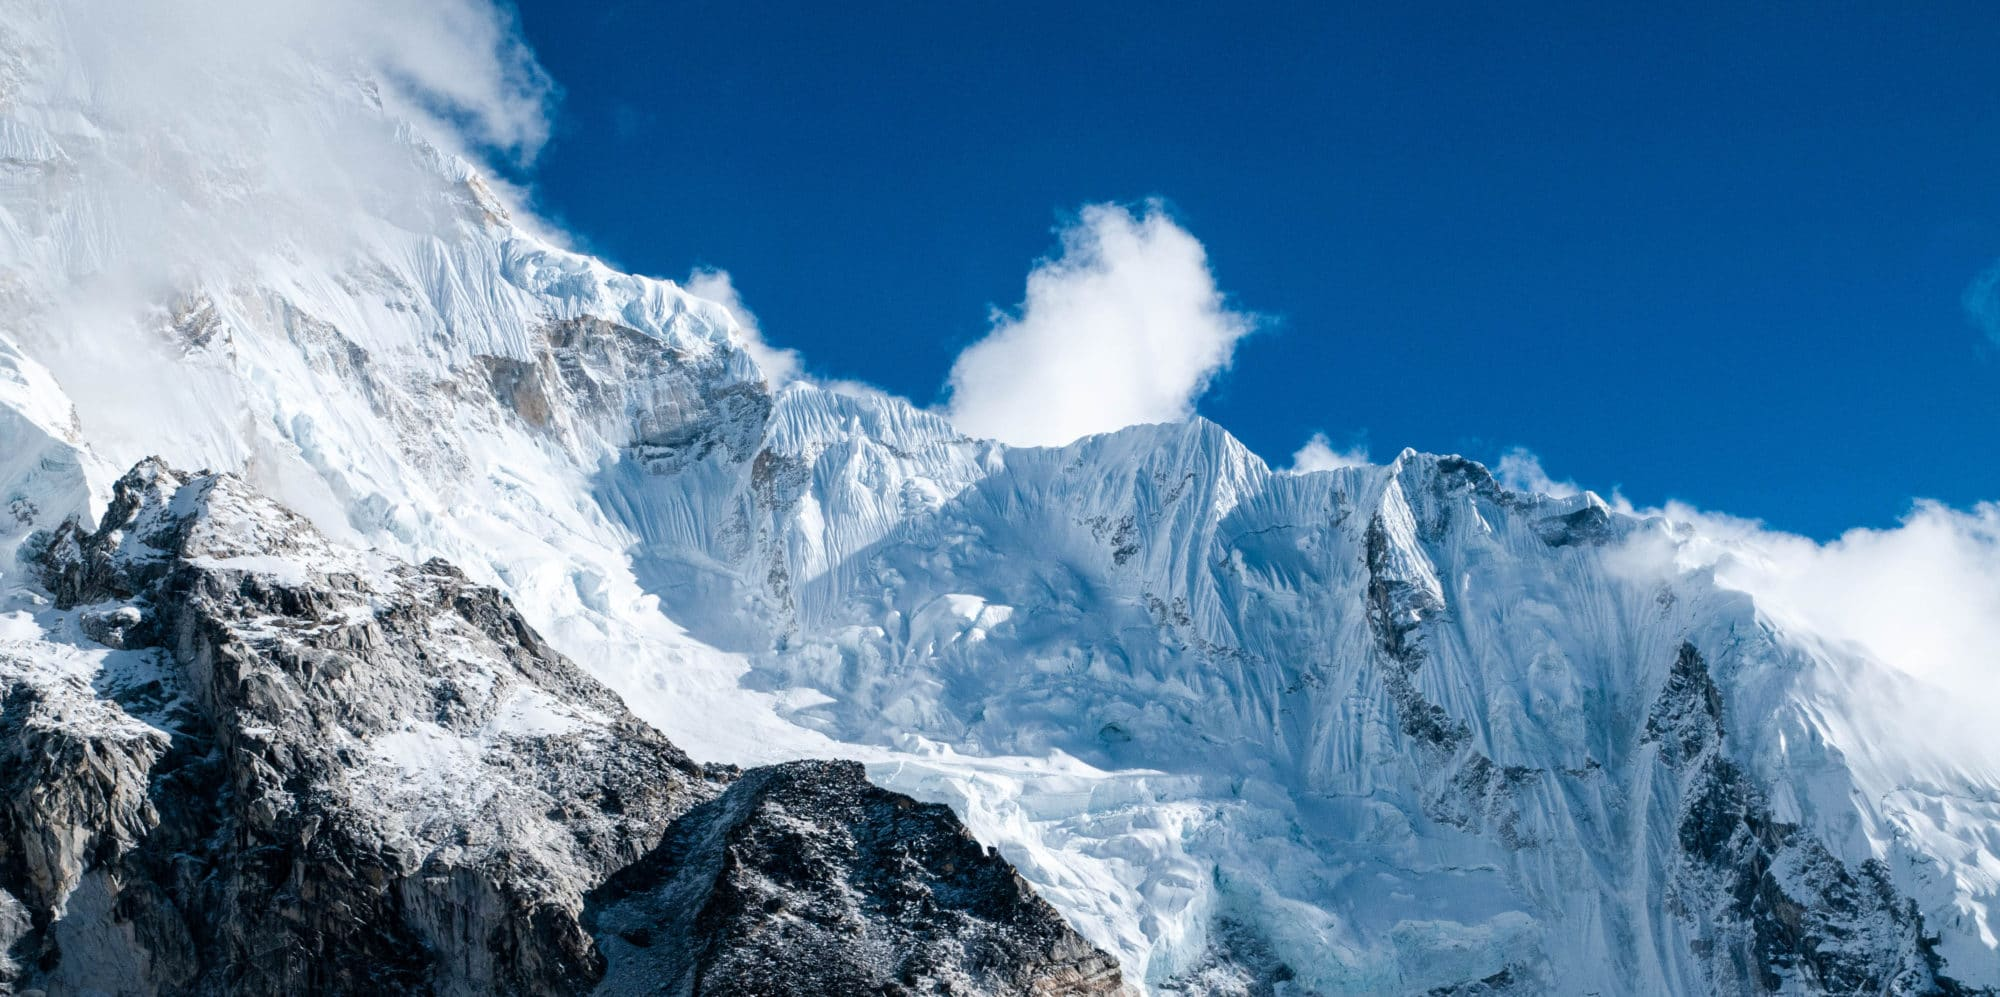 Ice and snow sculpted ridges of the Everest family of mountains